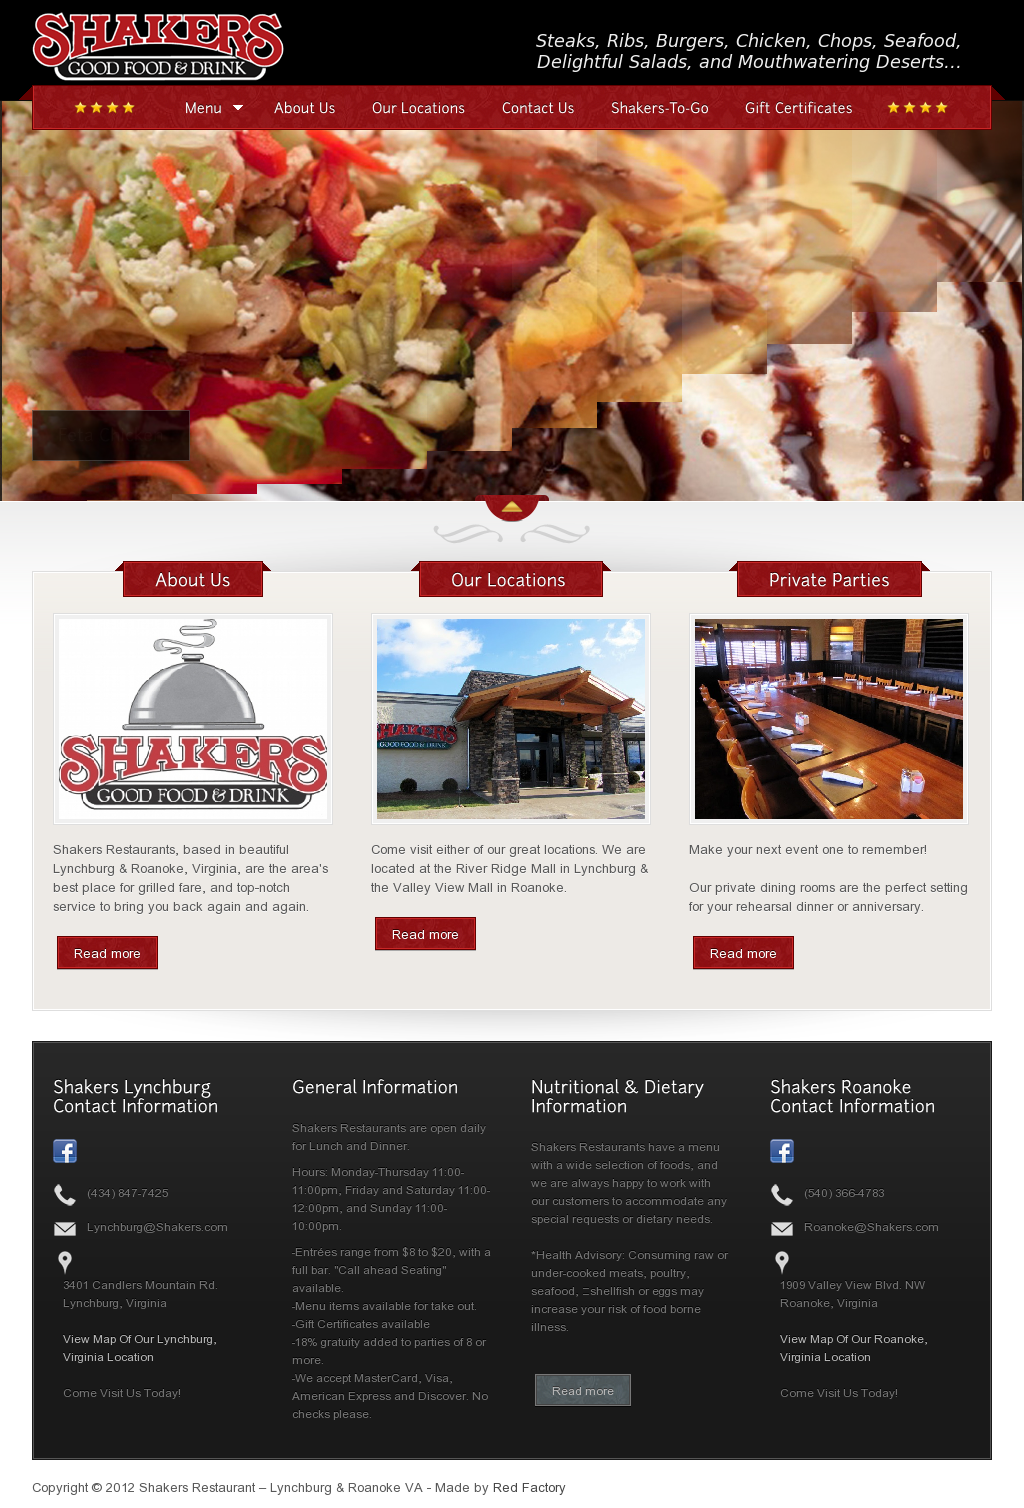 Shakers Restaurants are casual dining restaurants in the Lynchburg and Roanoke area. Check them out if you are looking for one of the best restaurants in Roanoke and Lynchburg >> restaurant Lynchburg --> http://shakers.com